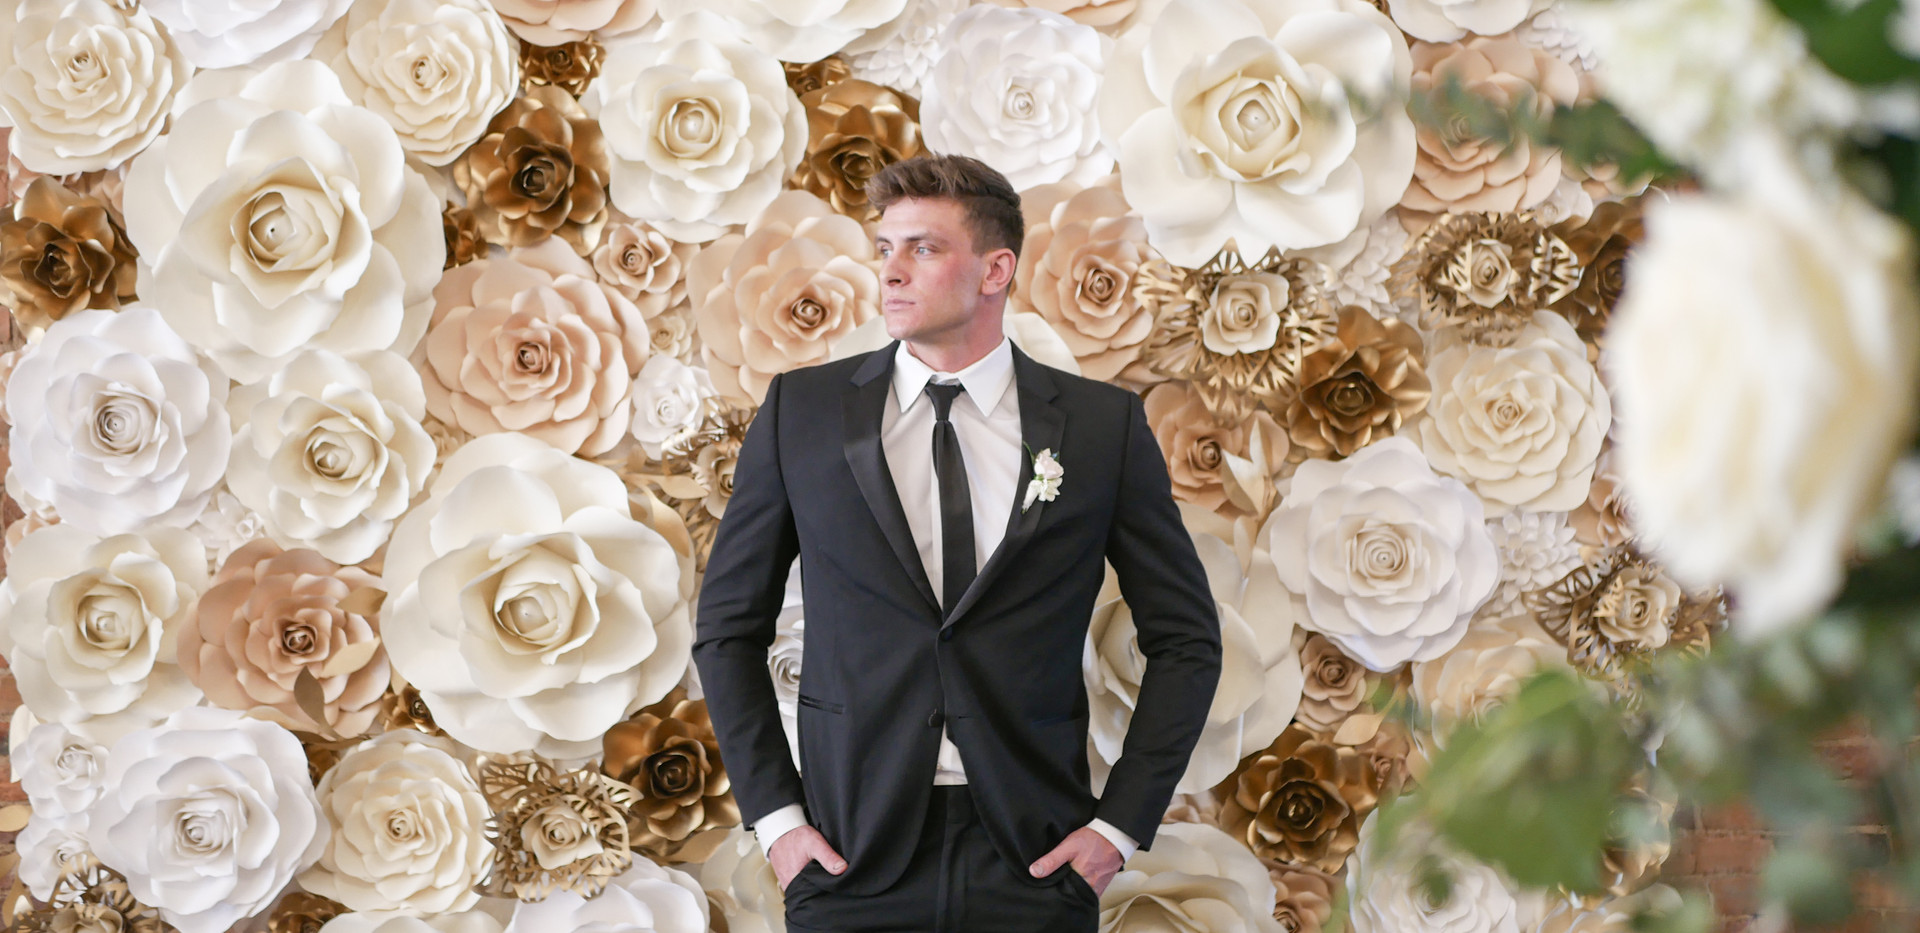 Styled shoot portrait44.jpg